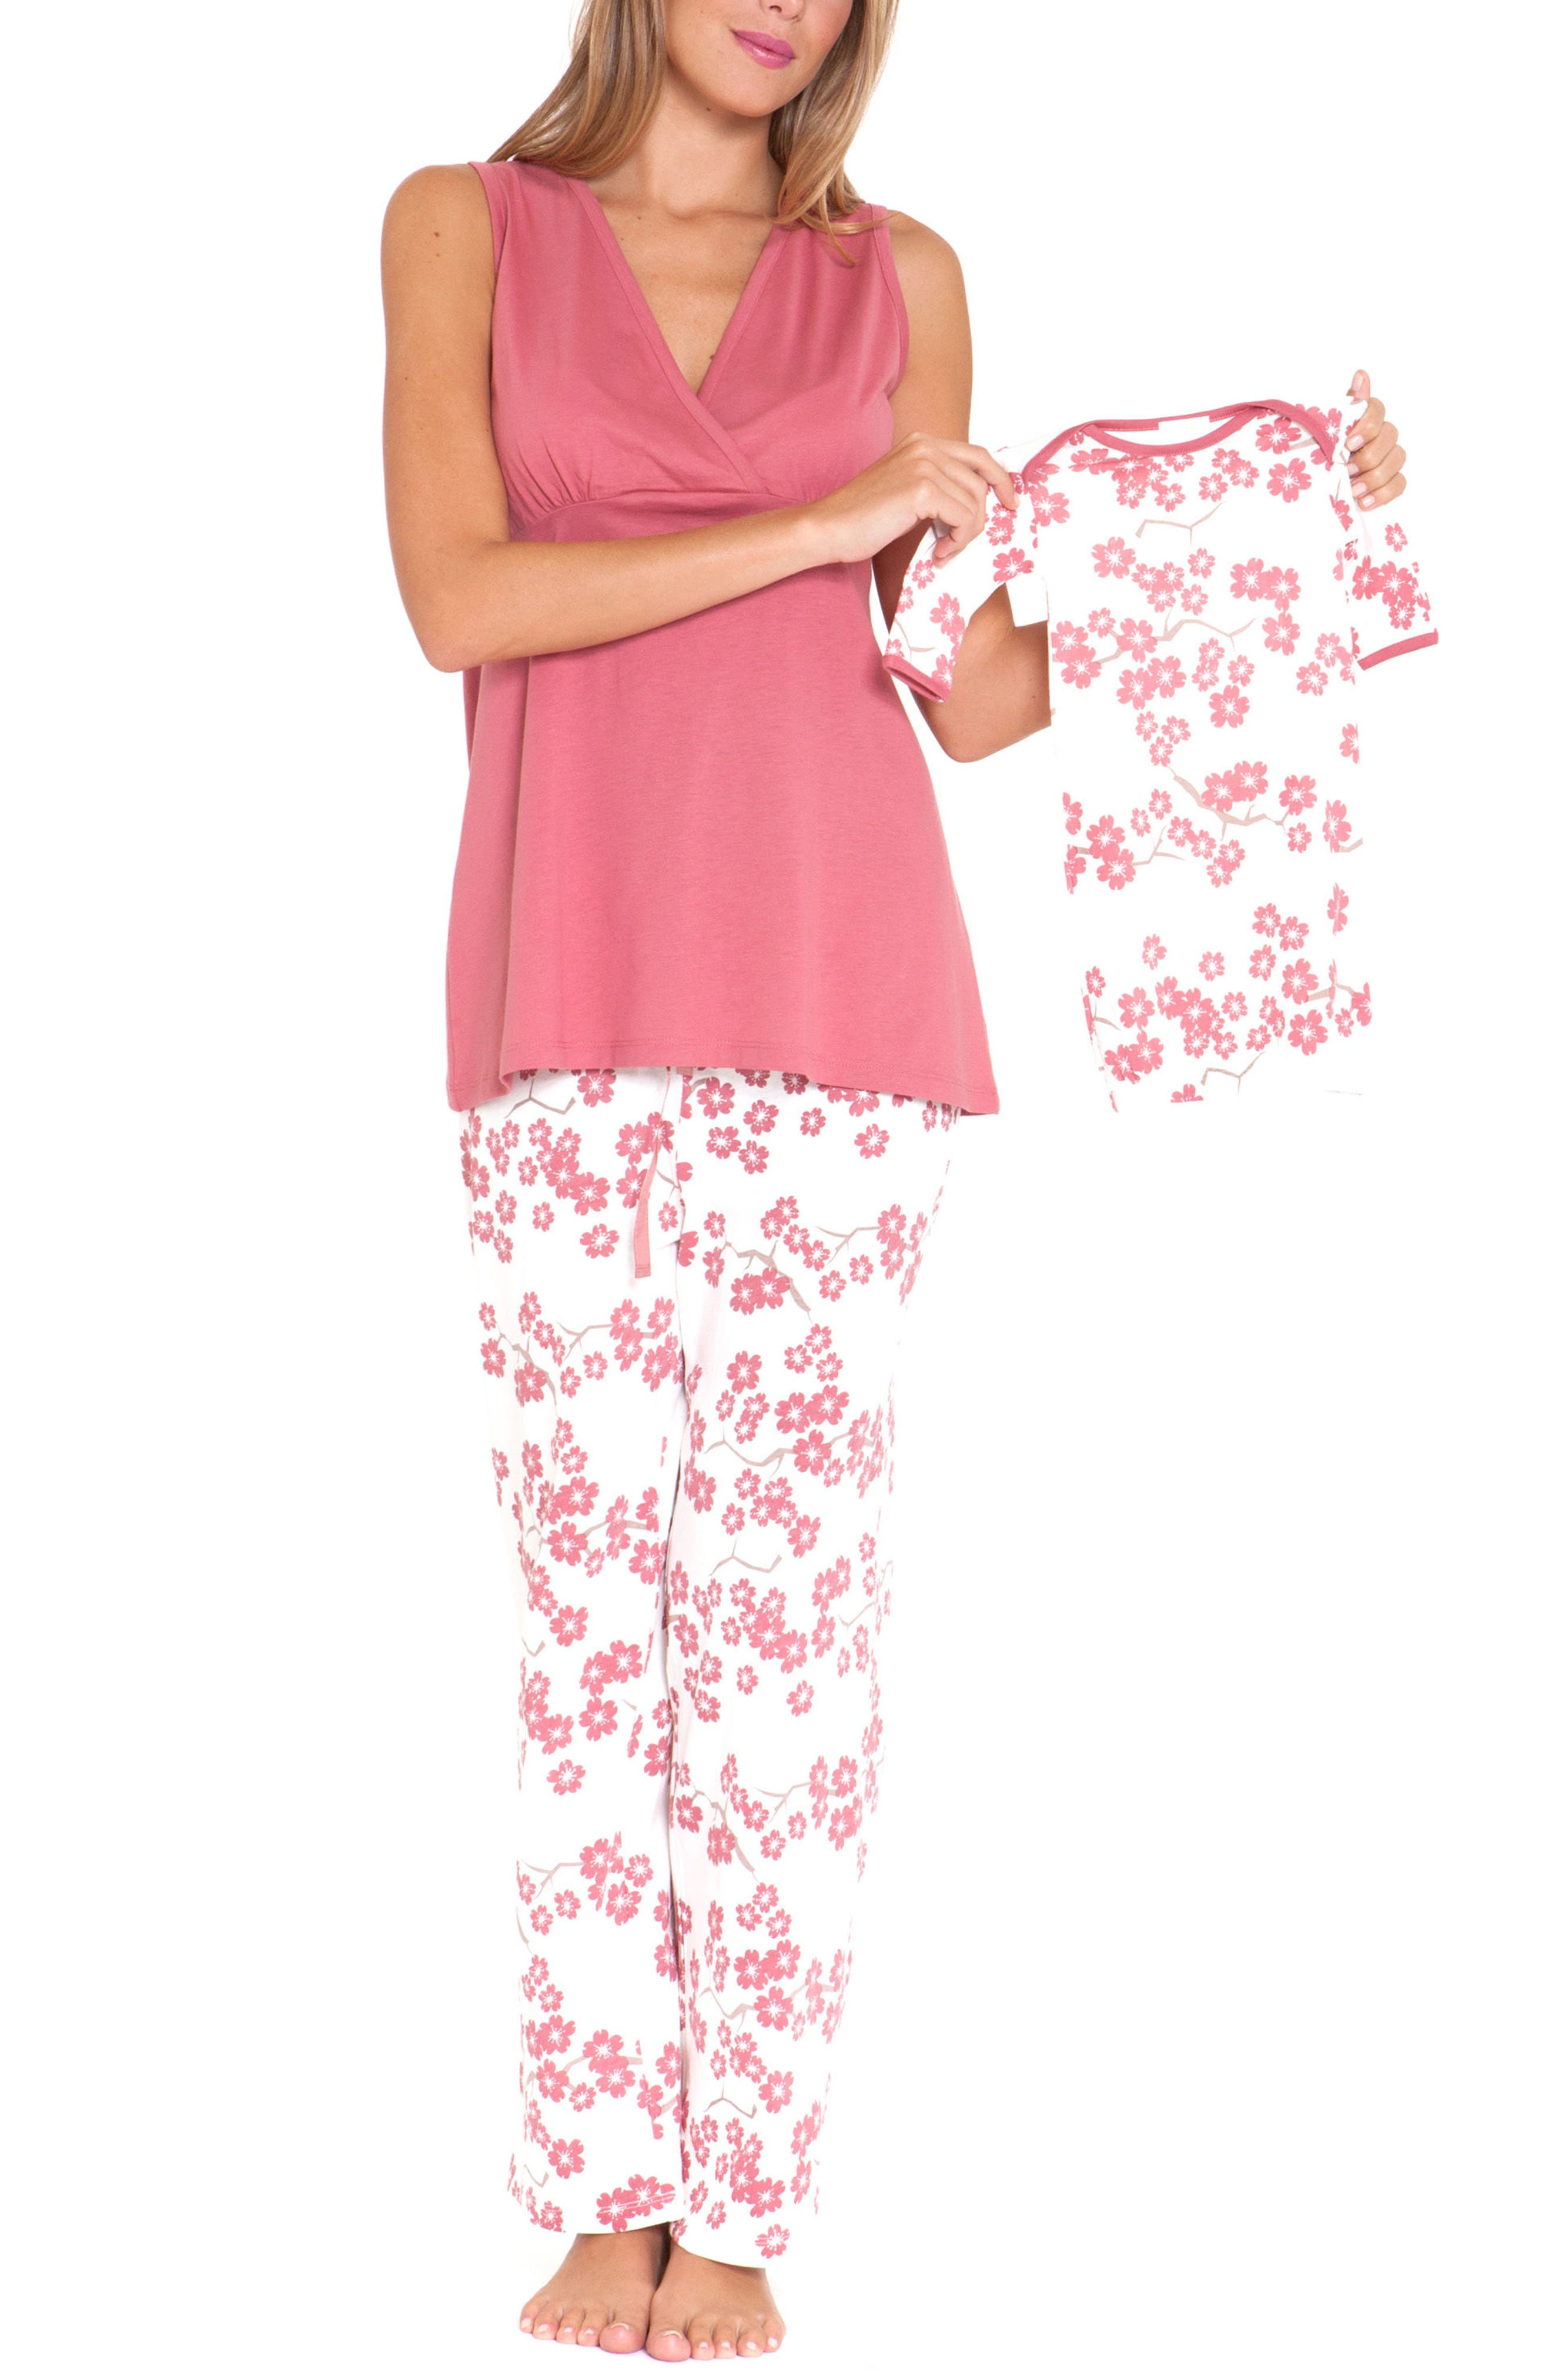 4-Piece Maternity Sleepwear Gift Set,                         Main,                         color, 664